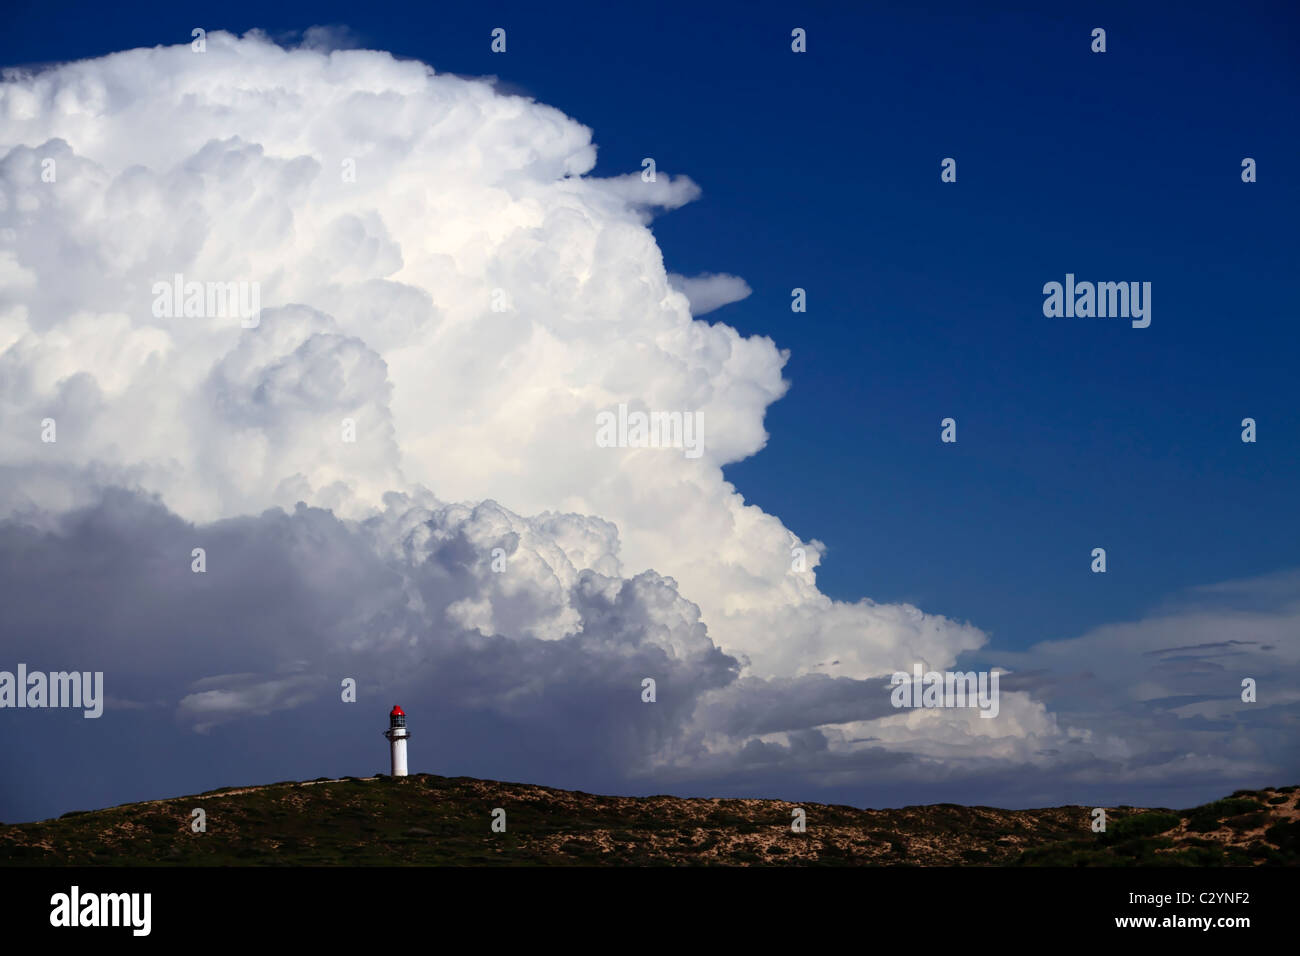 Point Quobba Lighthouse with big rain cloud in the distance, Northwest Australia - Stock Image